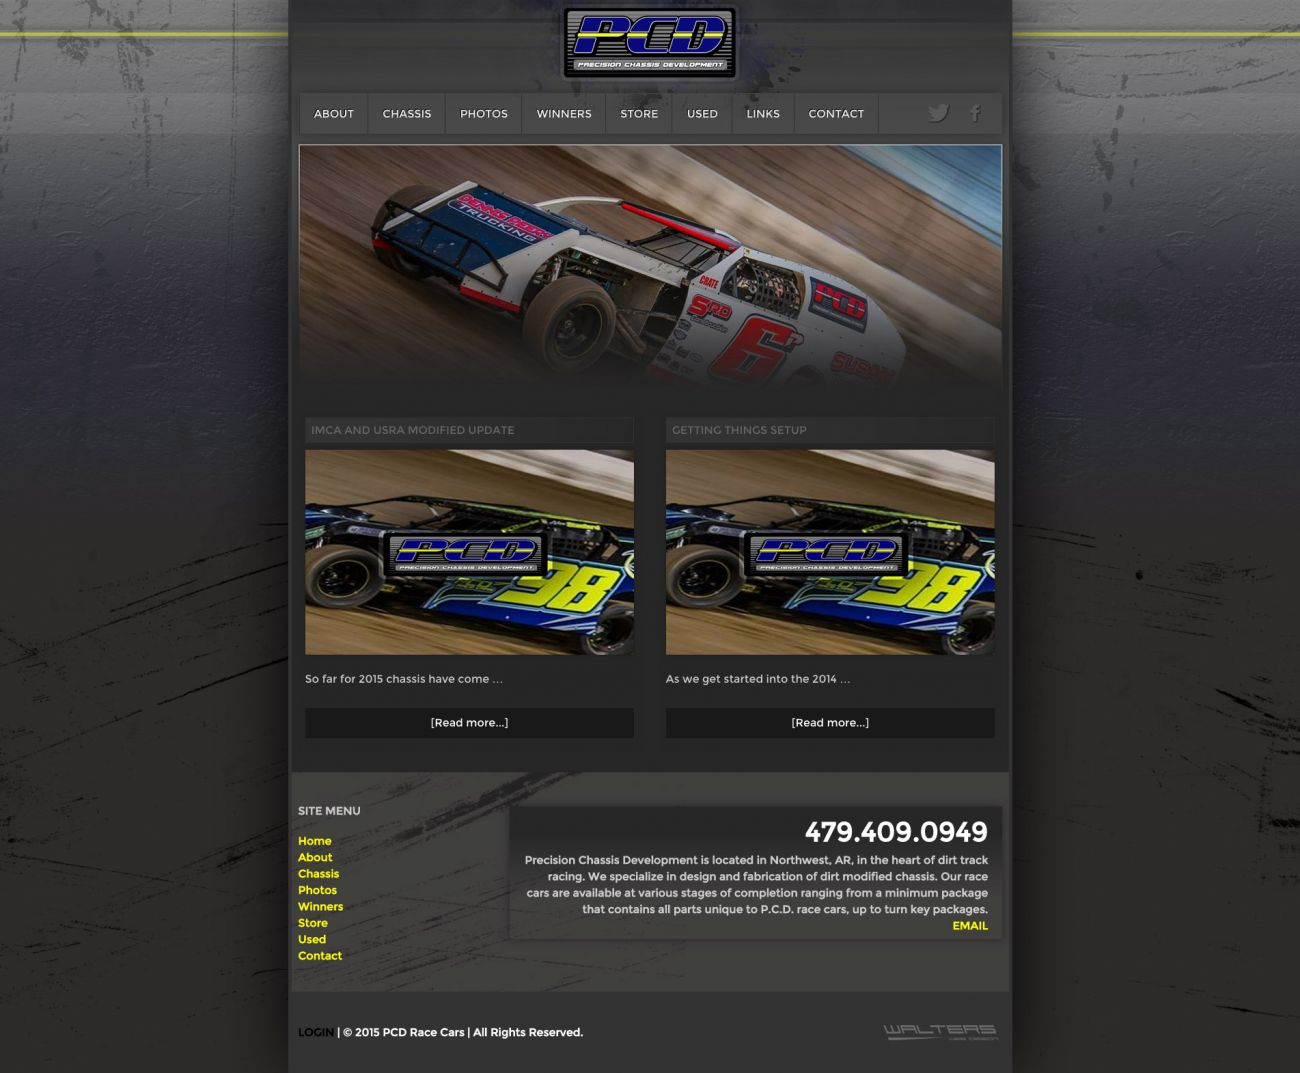 Walters Web Design Archives - Page 2 of 8 - Shane Walters